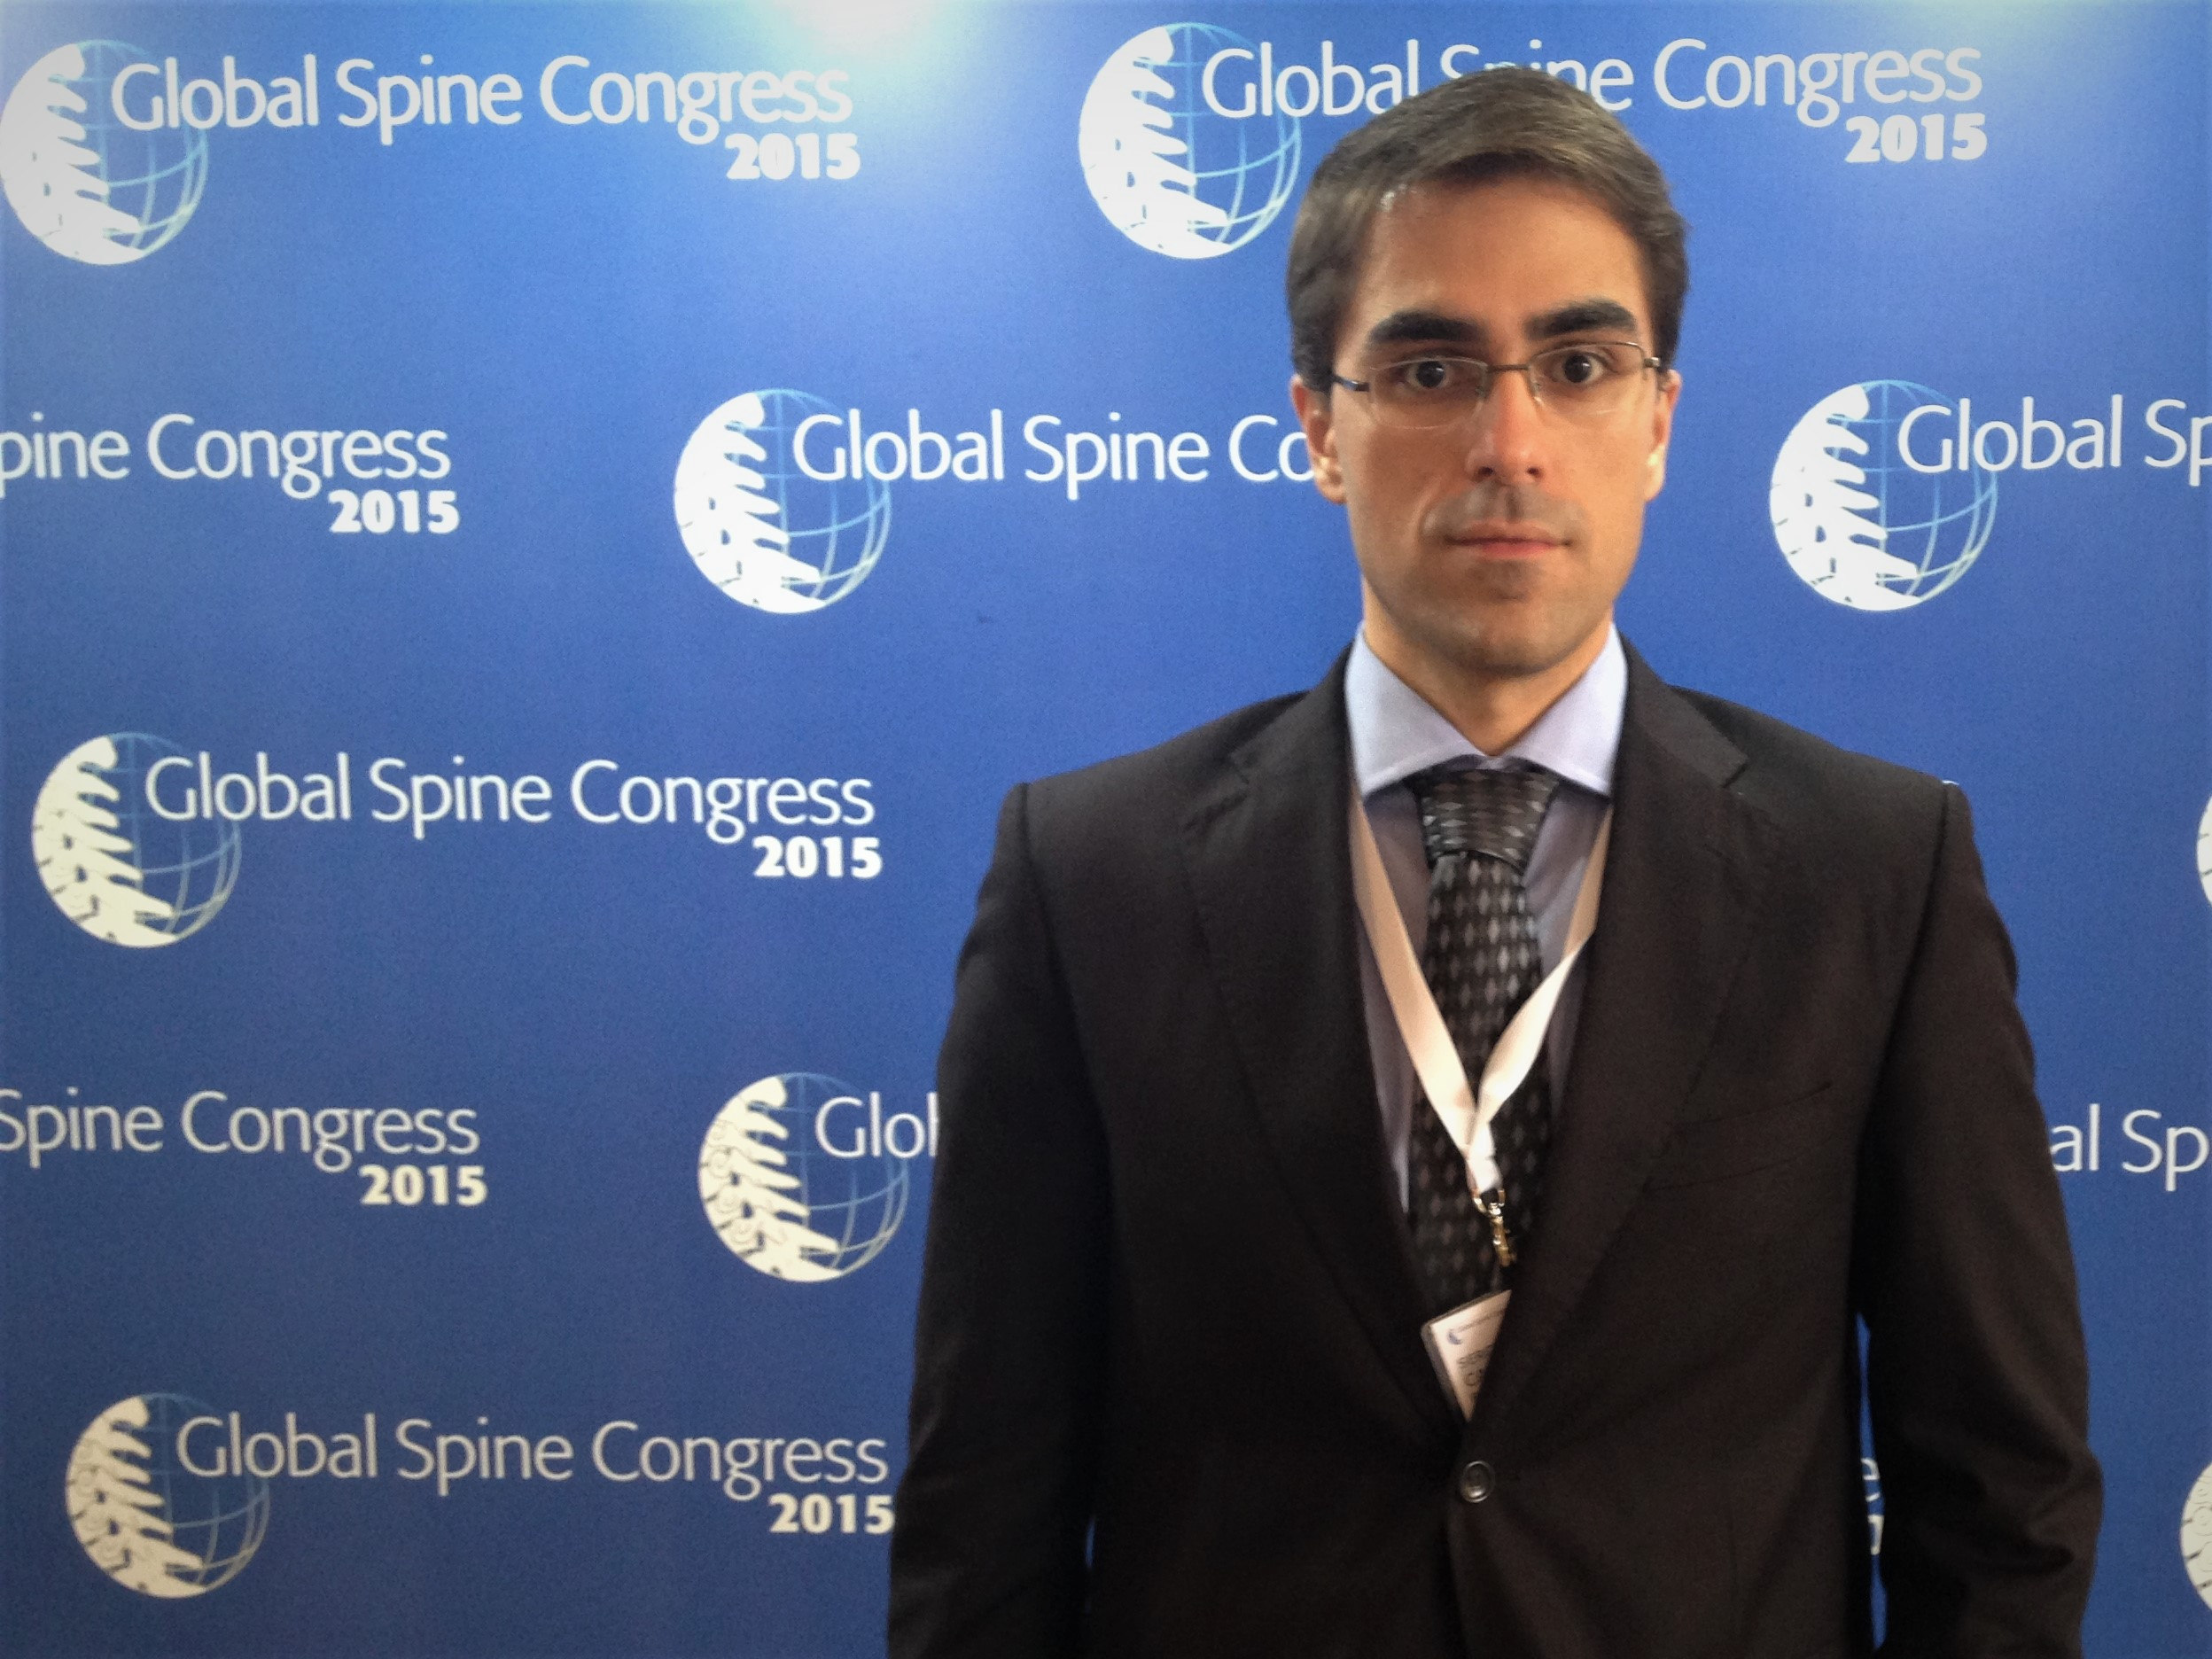 Global Spine Congress